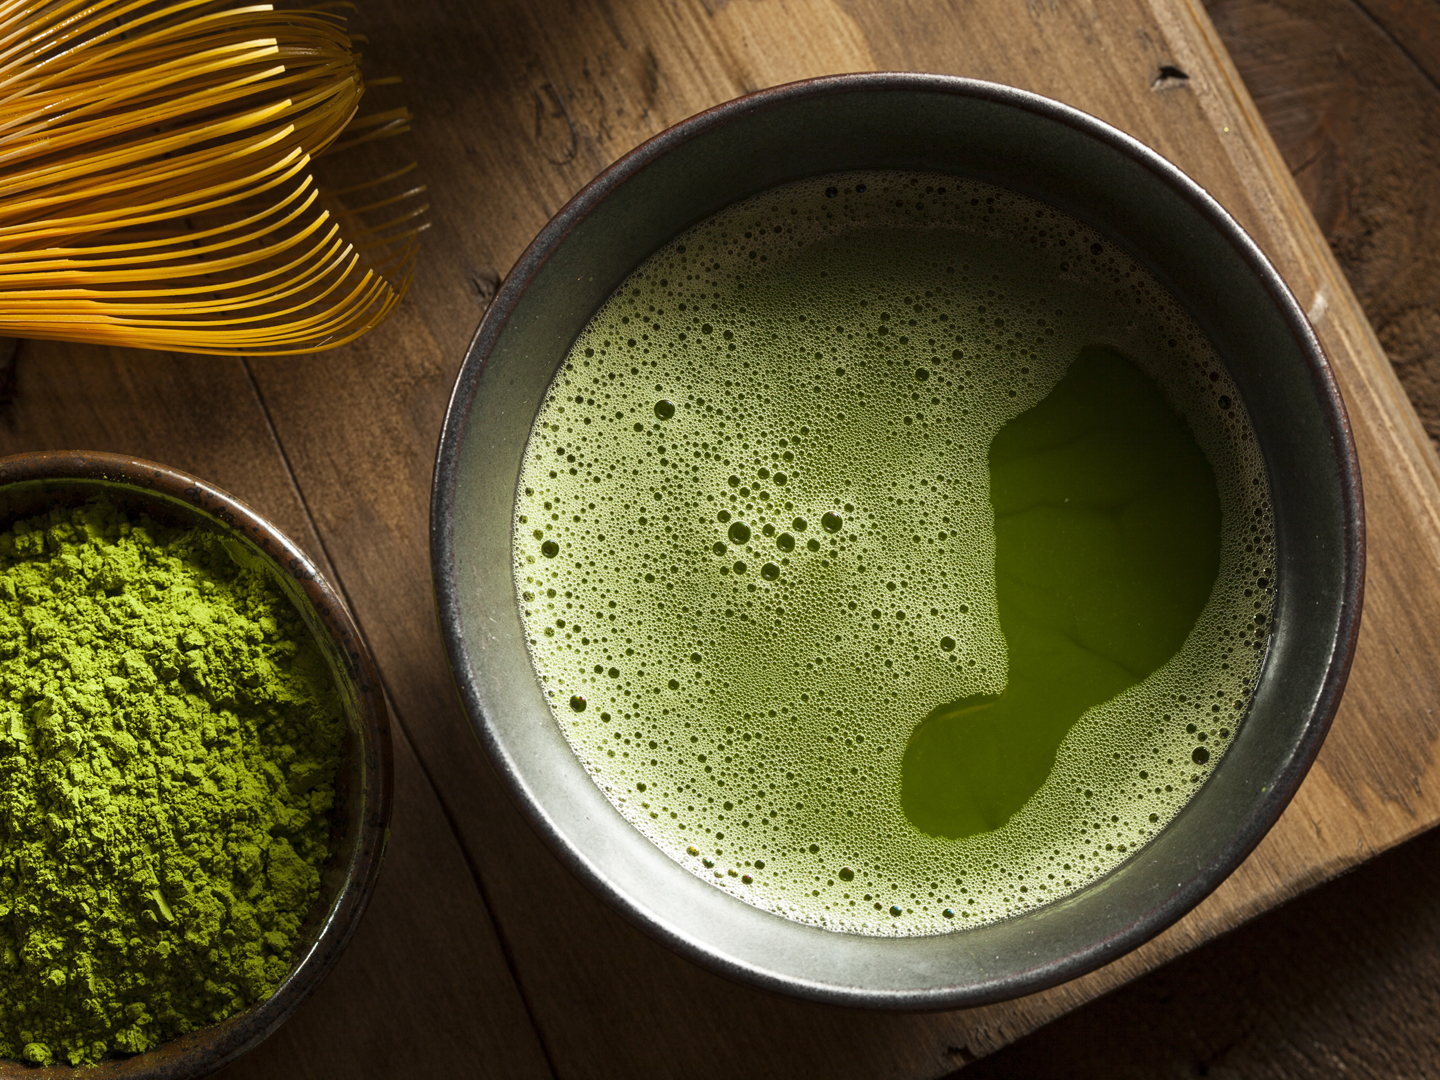 Health Benefits of Green Tea - Matcha Green Tea | Dr. Weil